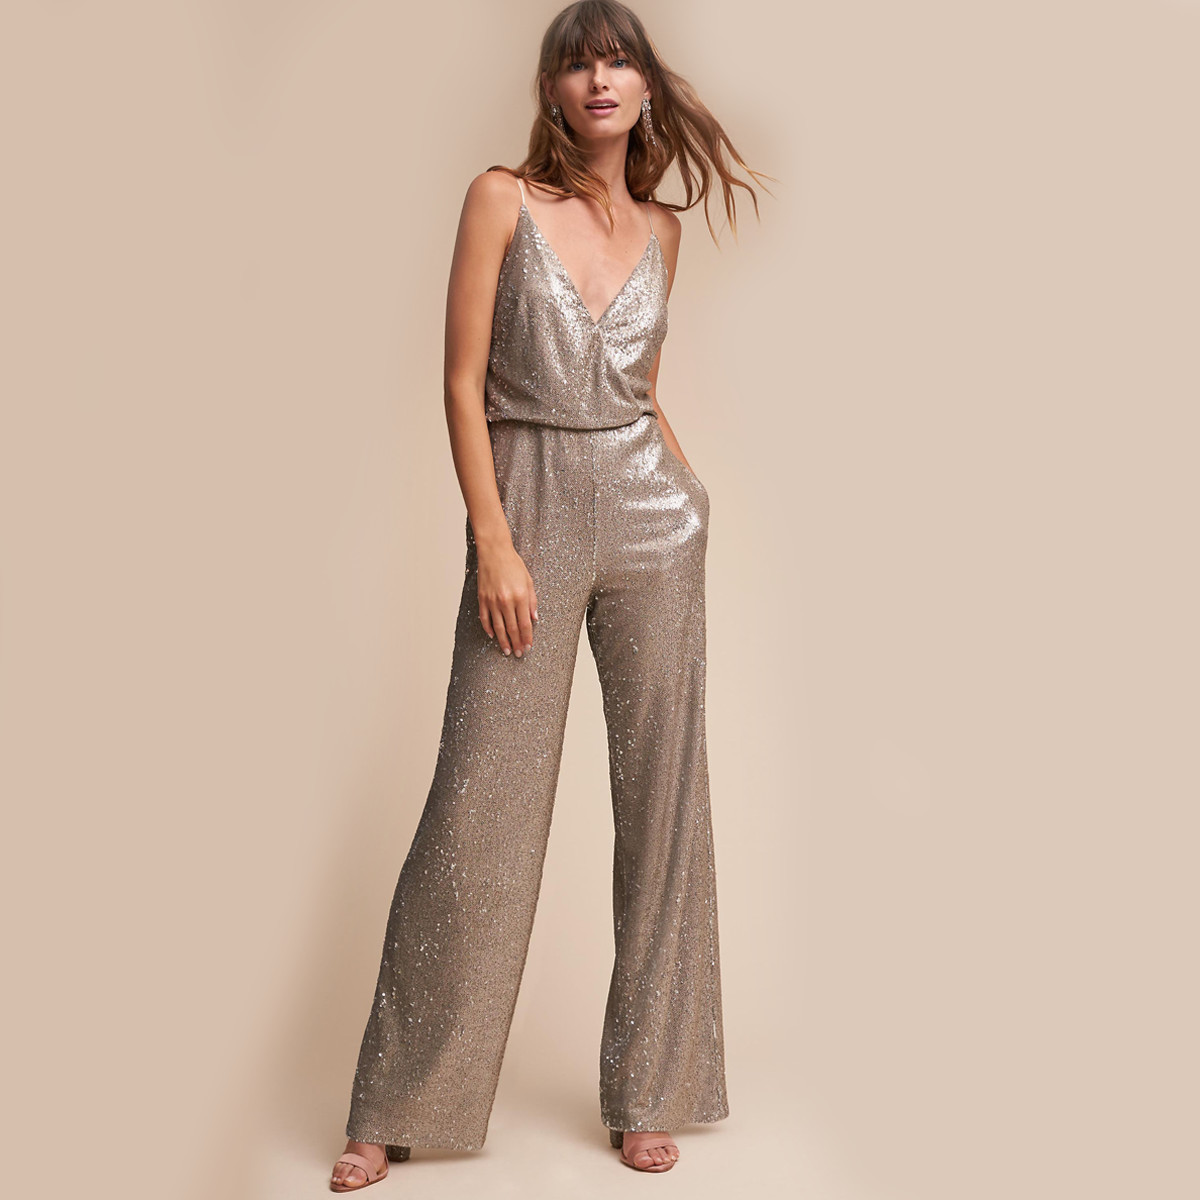 Woman wearing a gold jumpsuit photo